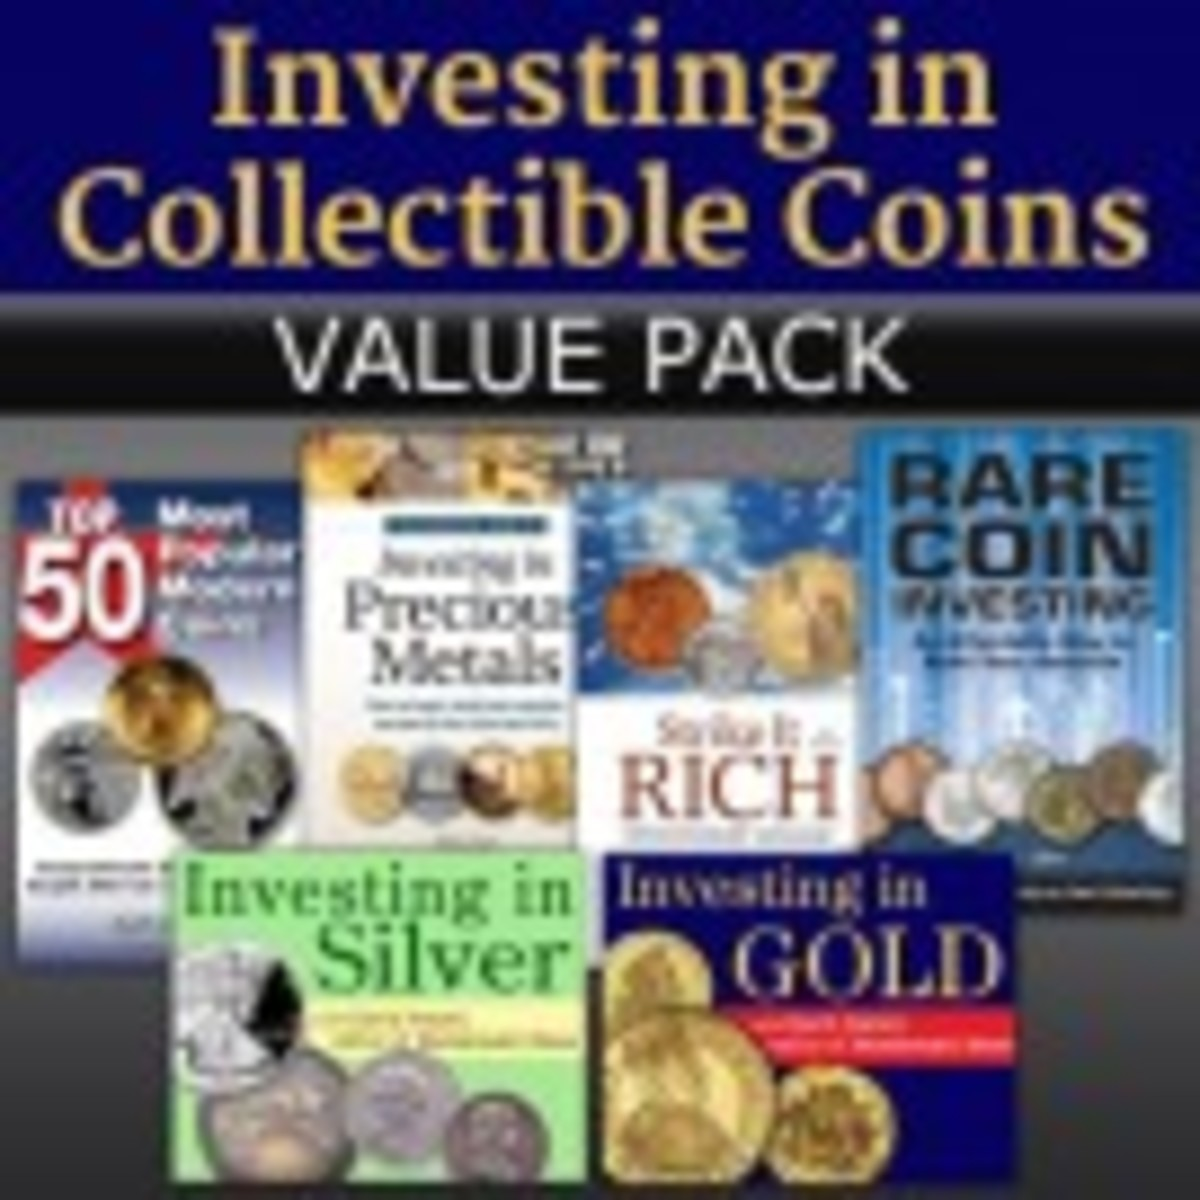 Investing in Collectible Coins Value Pack0